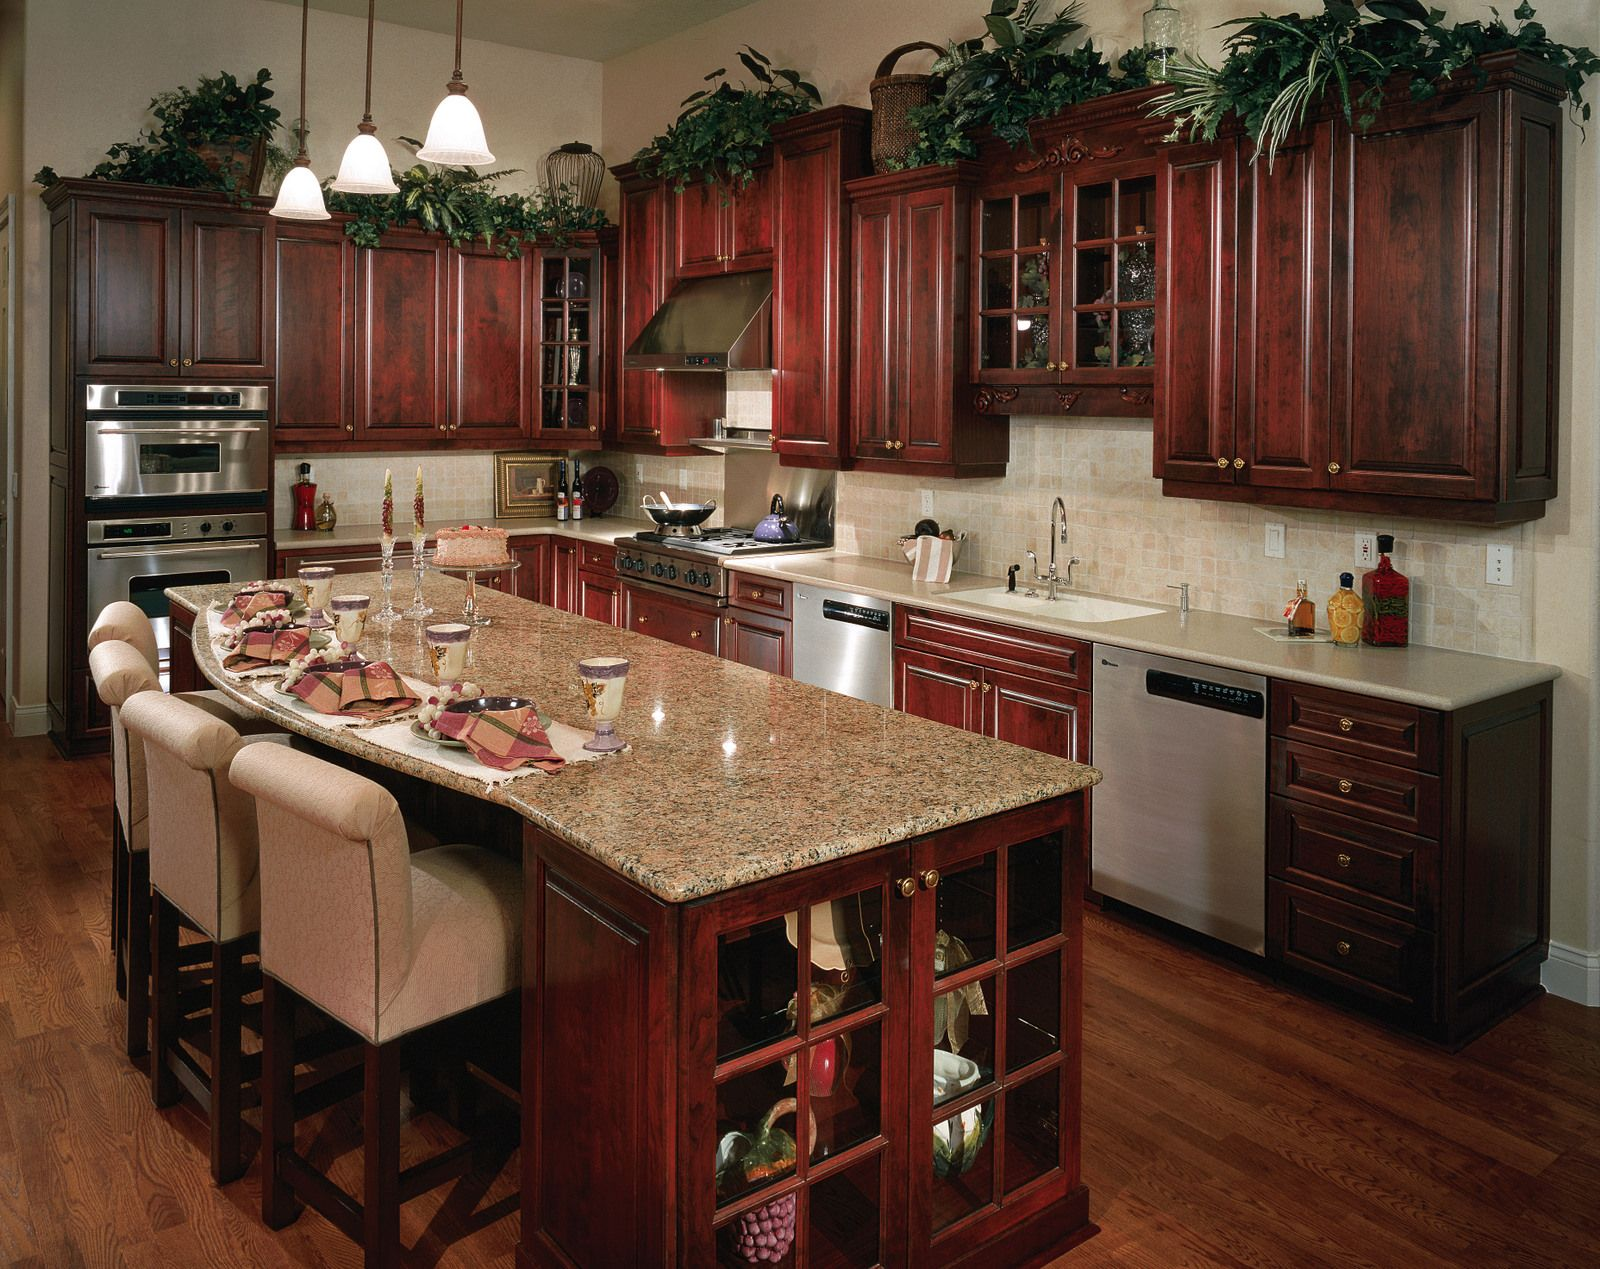 this photo about several reasons of why you should have cherry kitchen cabinets entitled as cherry cabinets kitchen also describes and labeled as - Cherry Cabinet Kitchen Designs